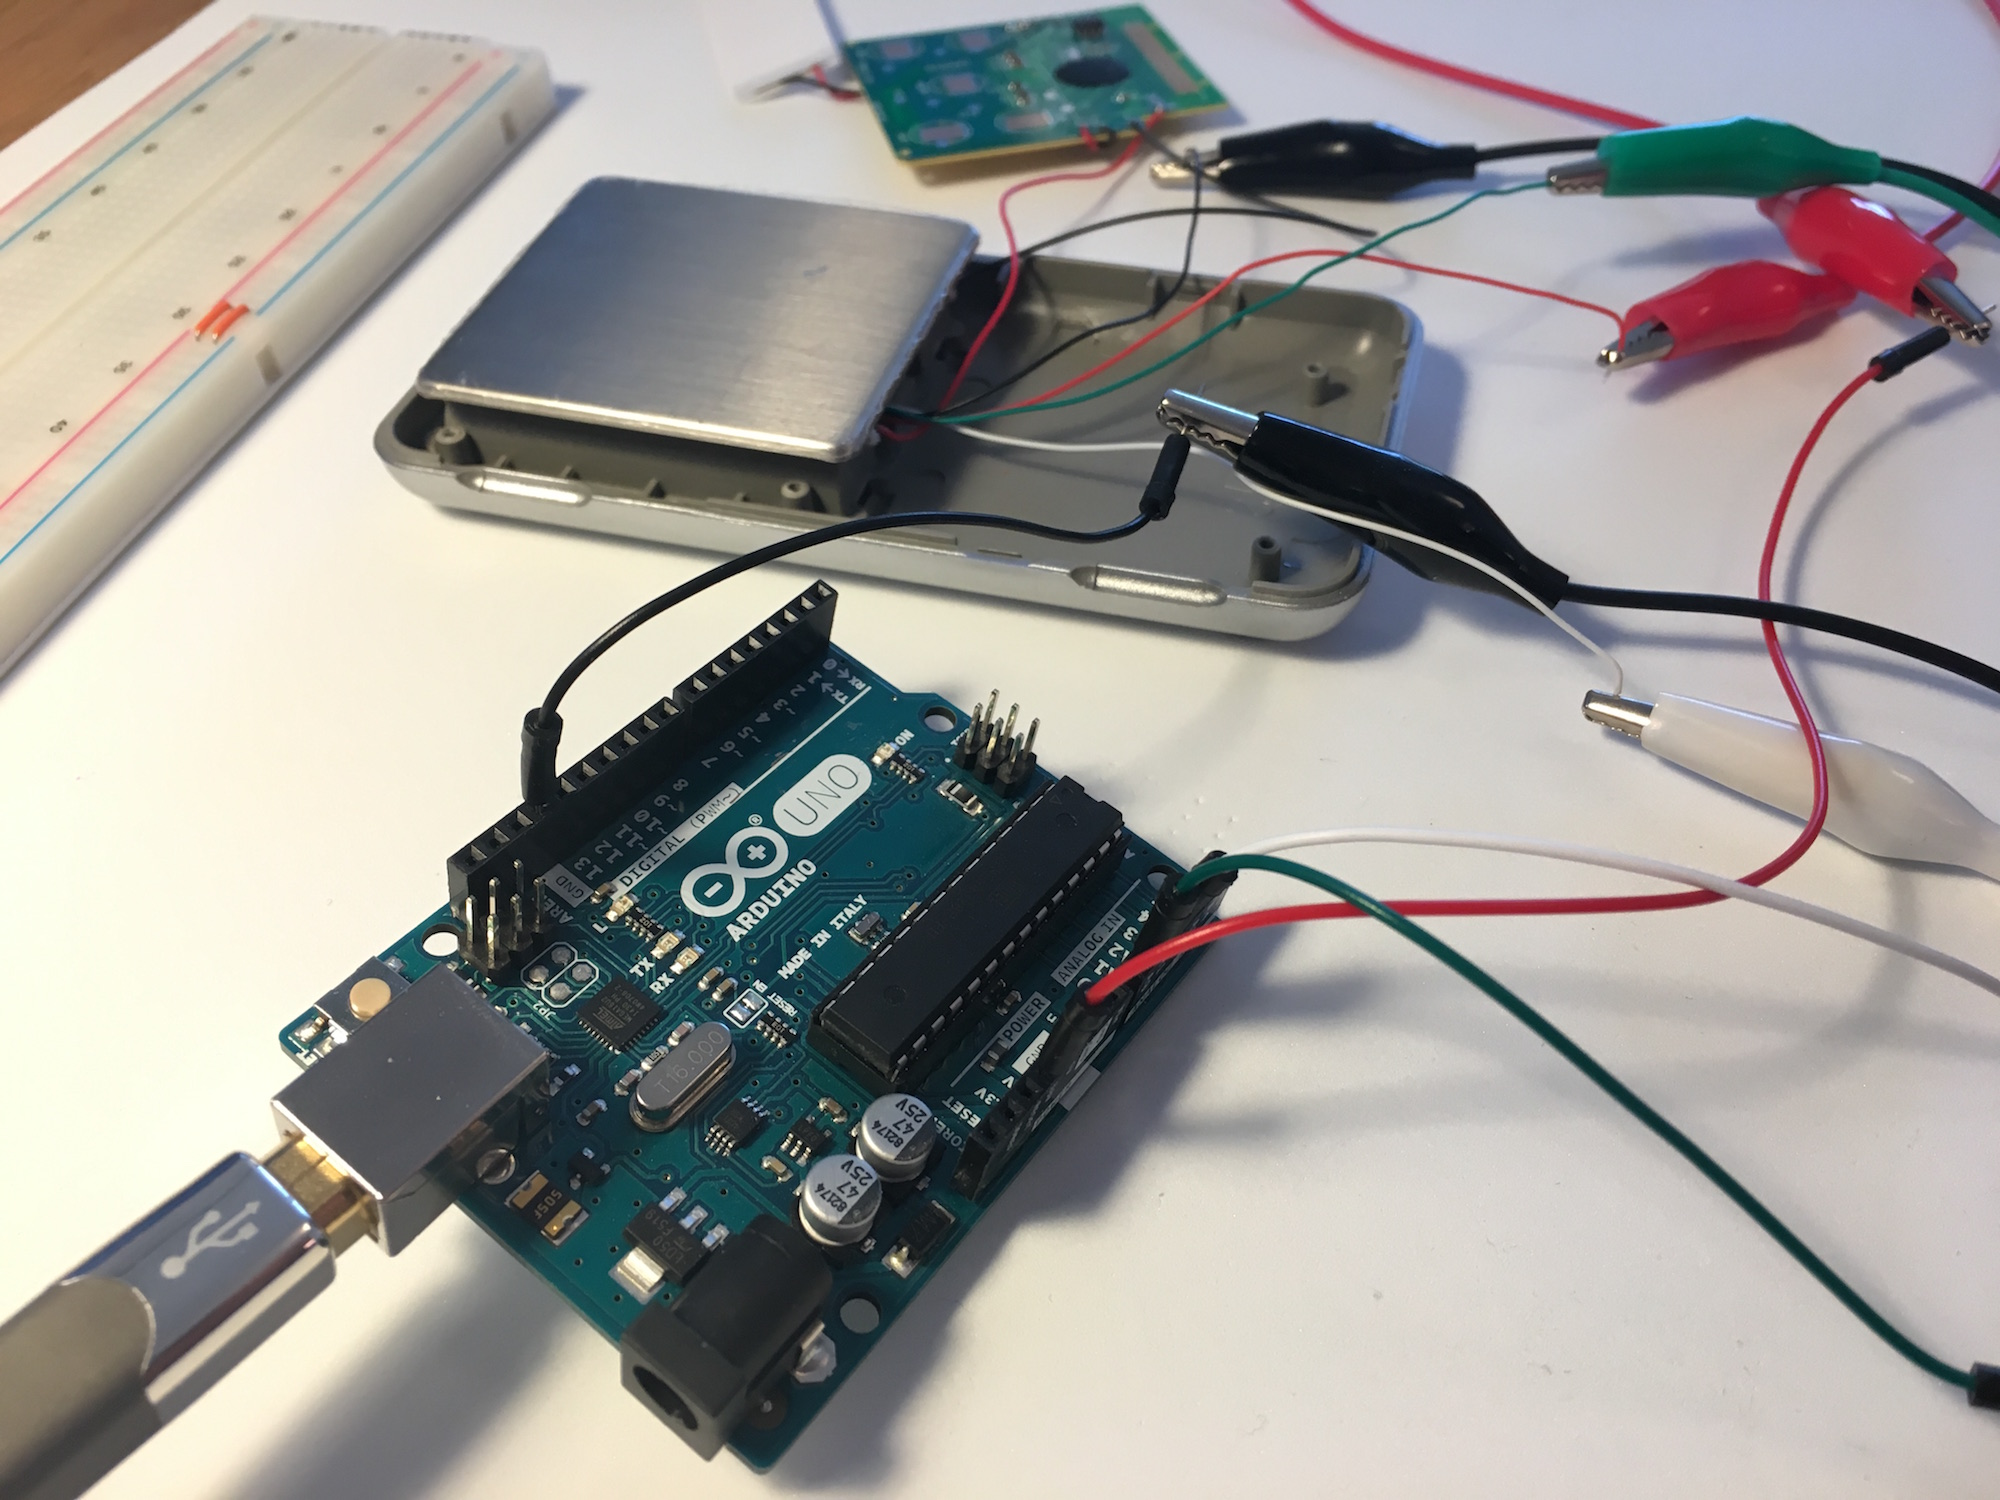 Building A Wi Fi Connected Kitchen Scale Or Coaster 4 Wire Load Cell Wiring Our First Try Was To Cut The Wires Coming From Scales Pcb And Connect These An Arduino Uno